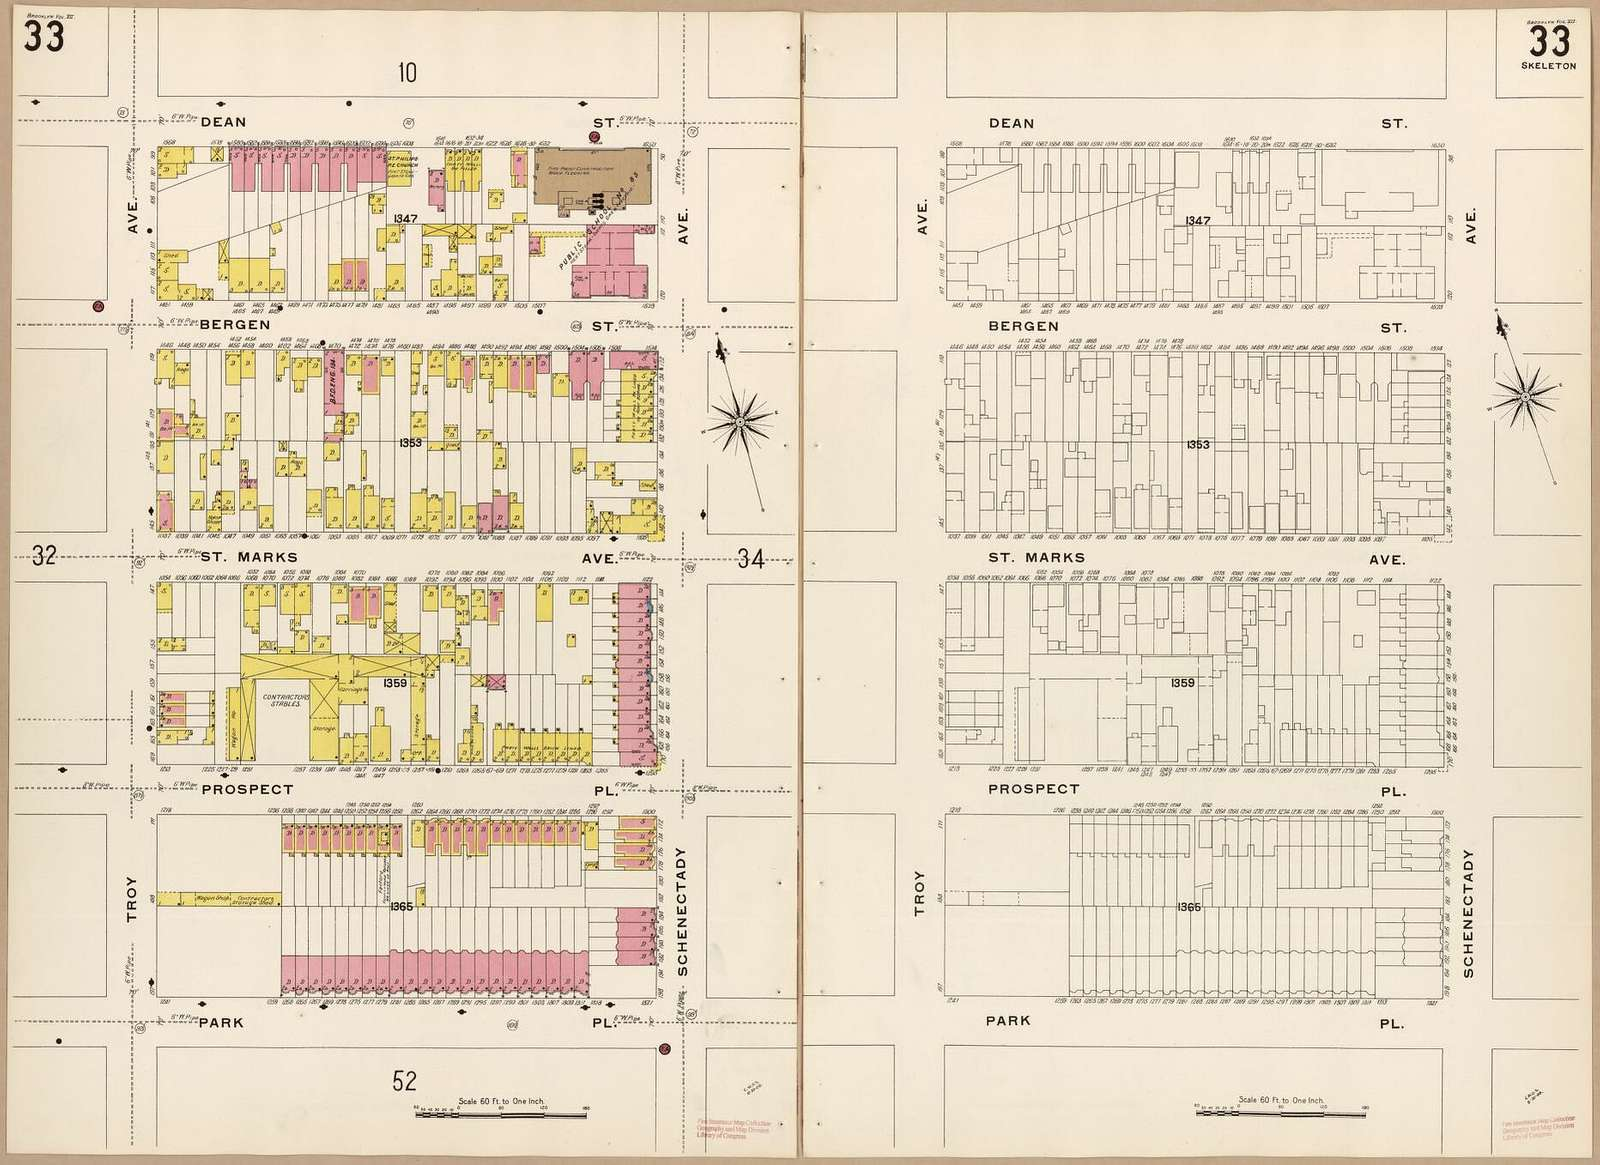 Sanborn Fire Insurance Map from Brooklyn, Kings County, New York.